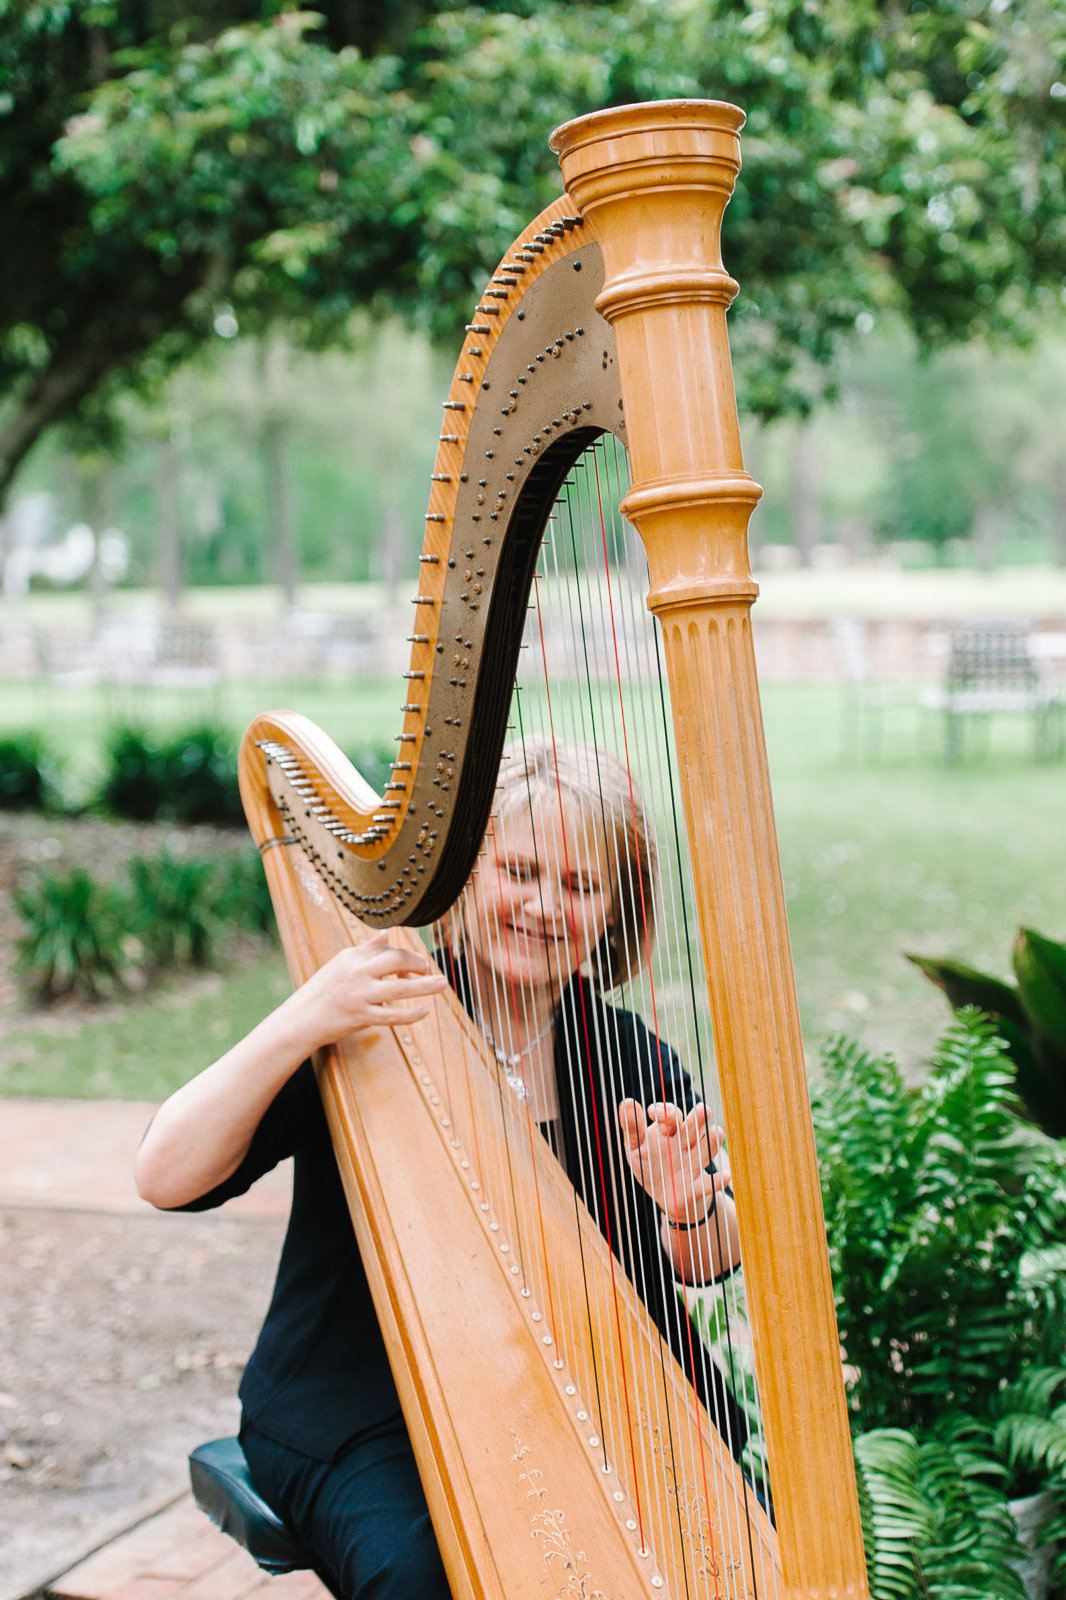 75 Ways to Throw a Luxury Wedding on a Budget - harpist